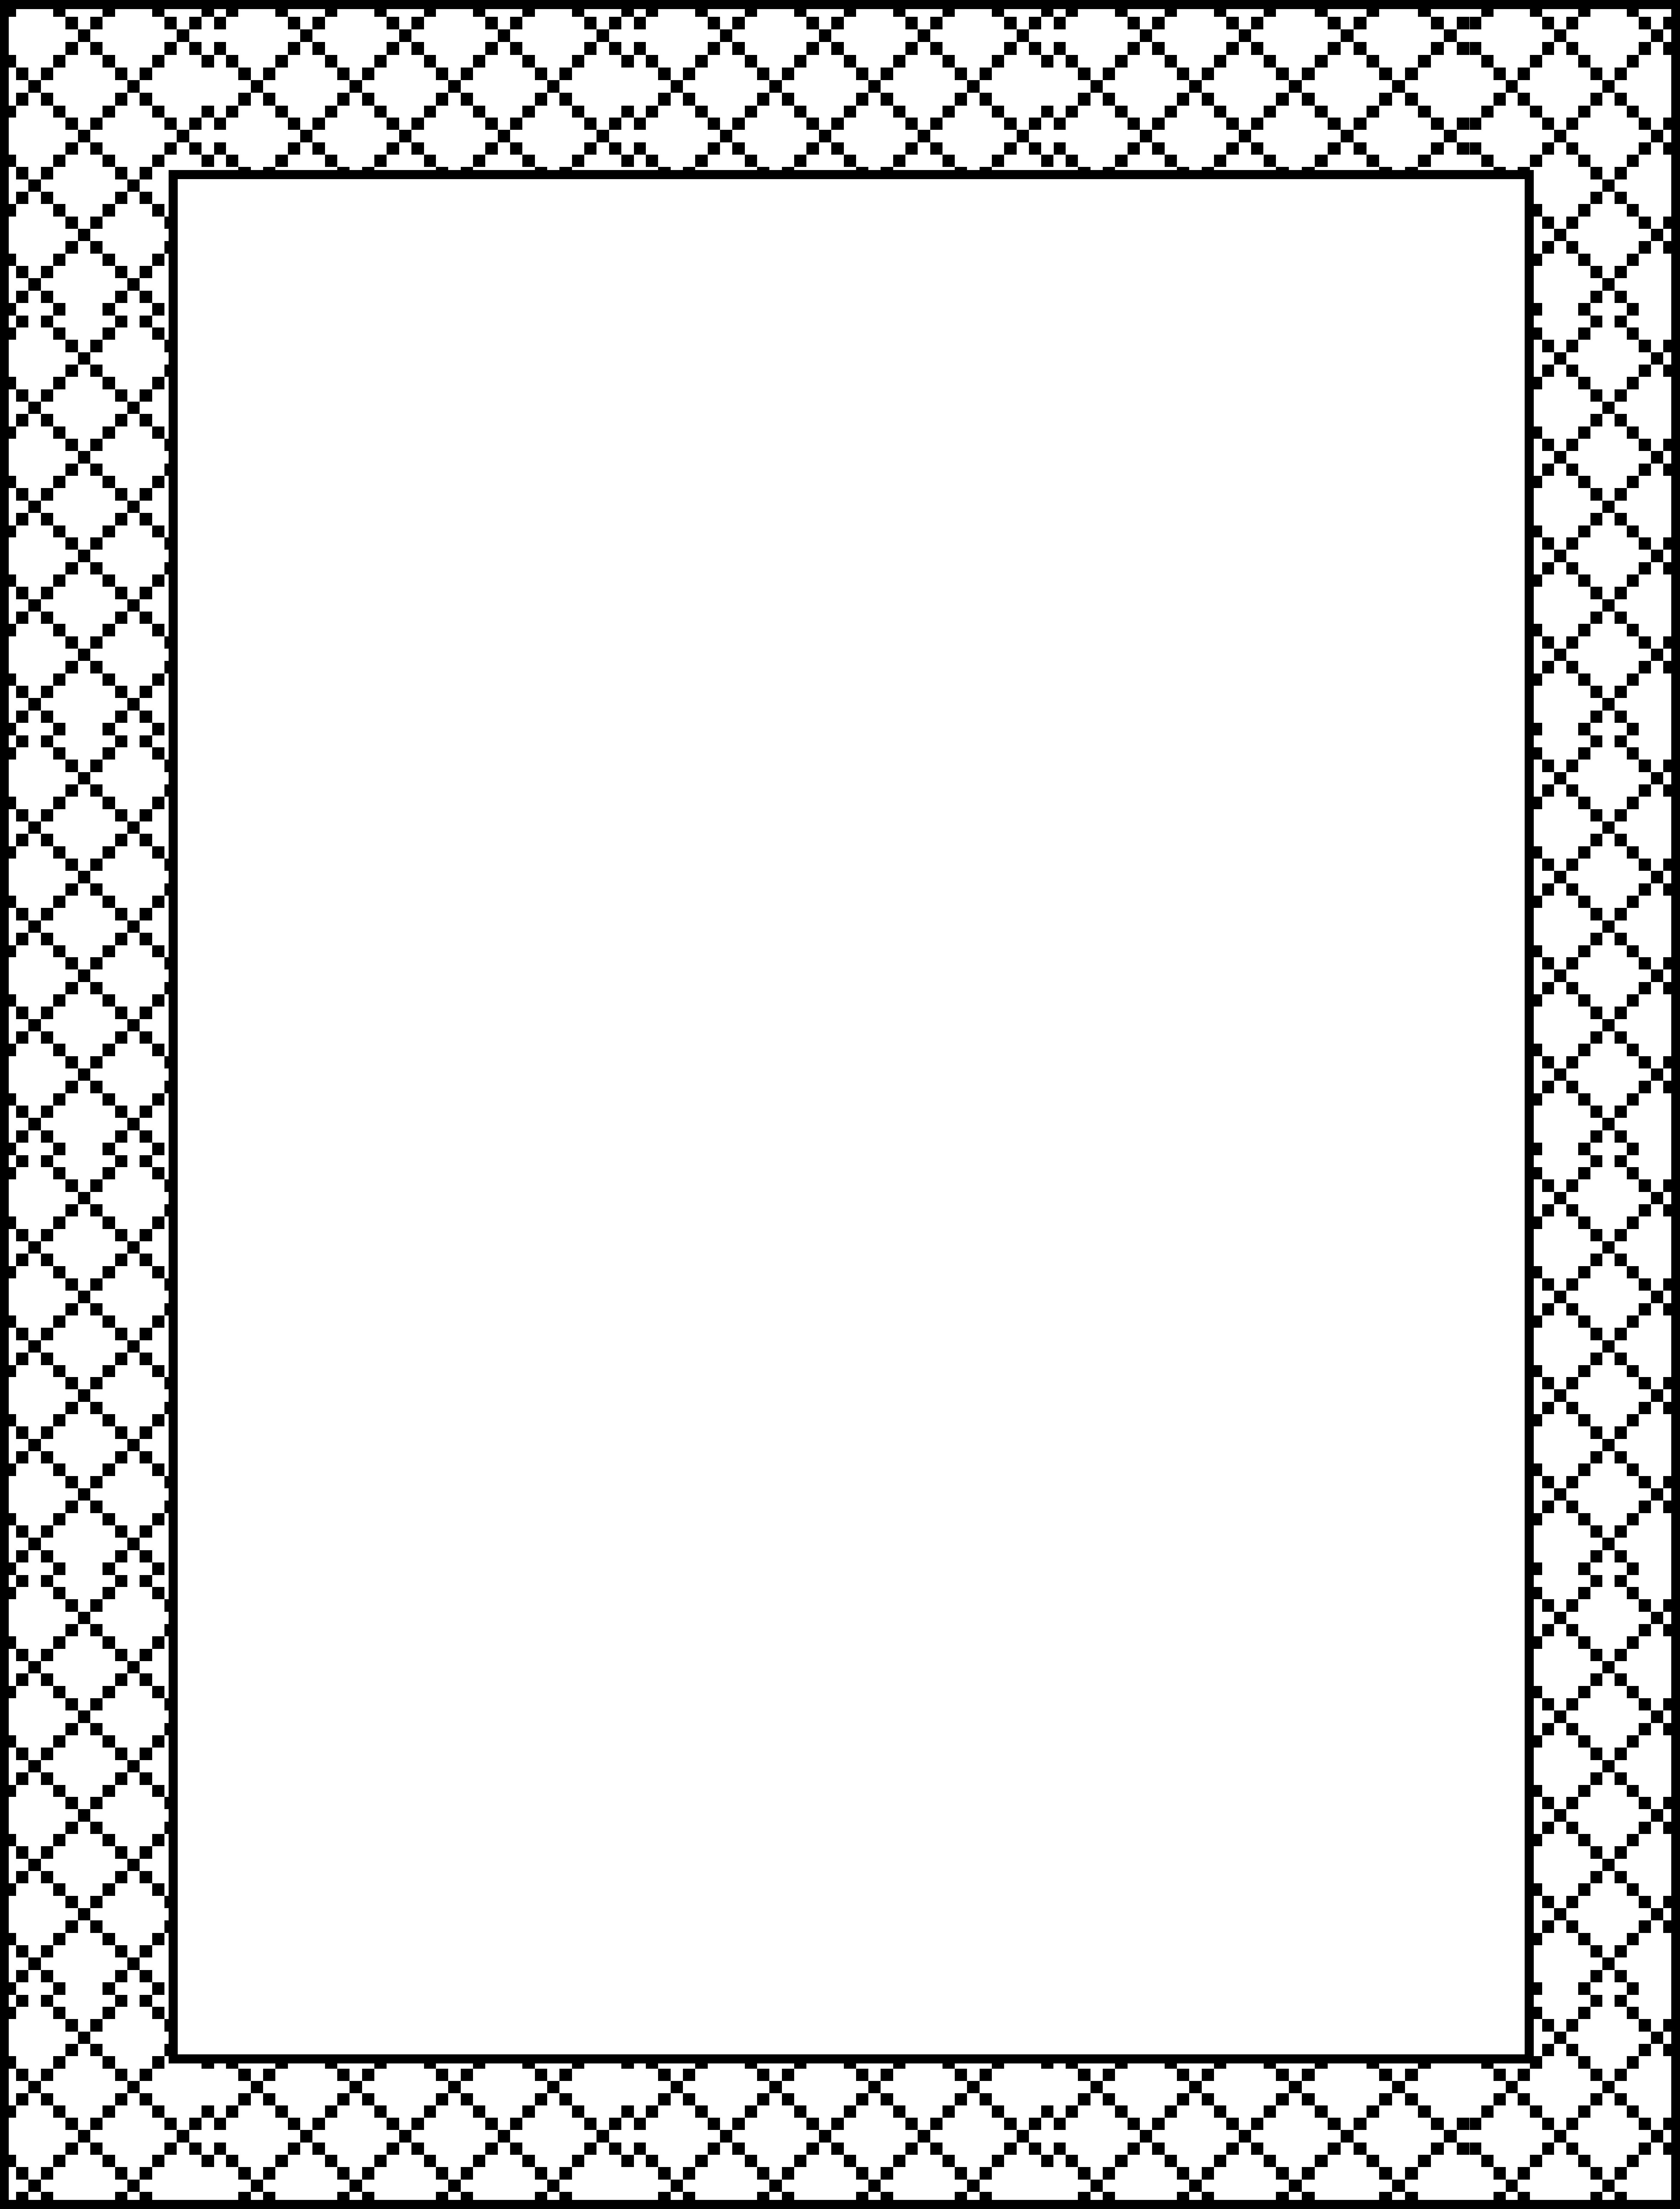 Elegant page borders clipart vector free library Elegant Page Borders | Free Download Clip Art | Free Clip Art | on ... vector free library